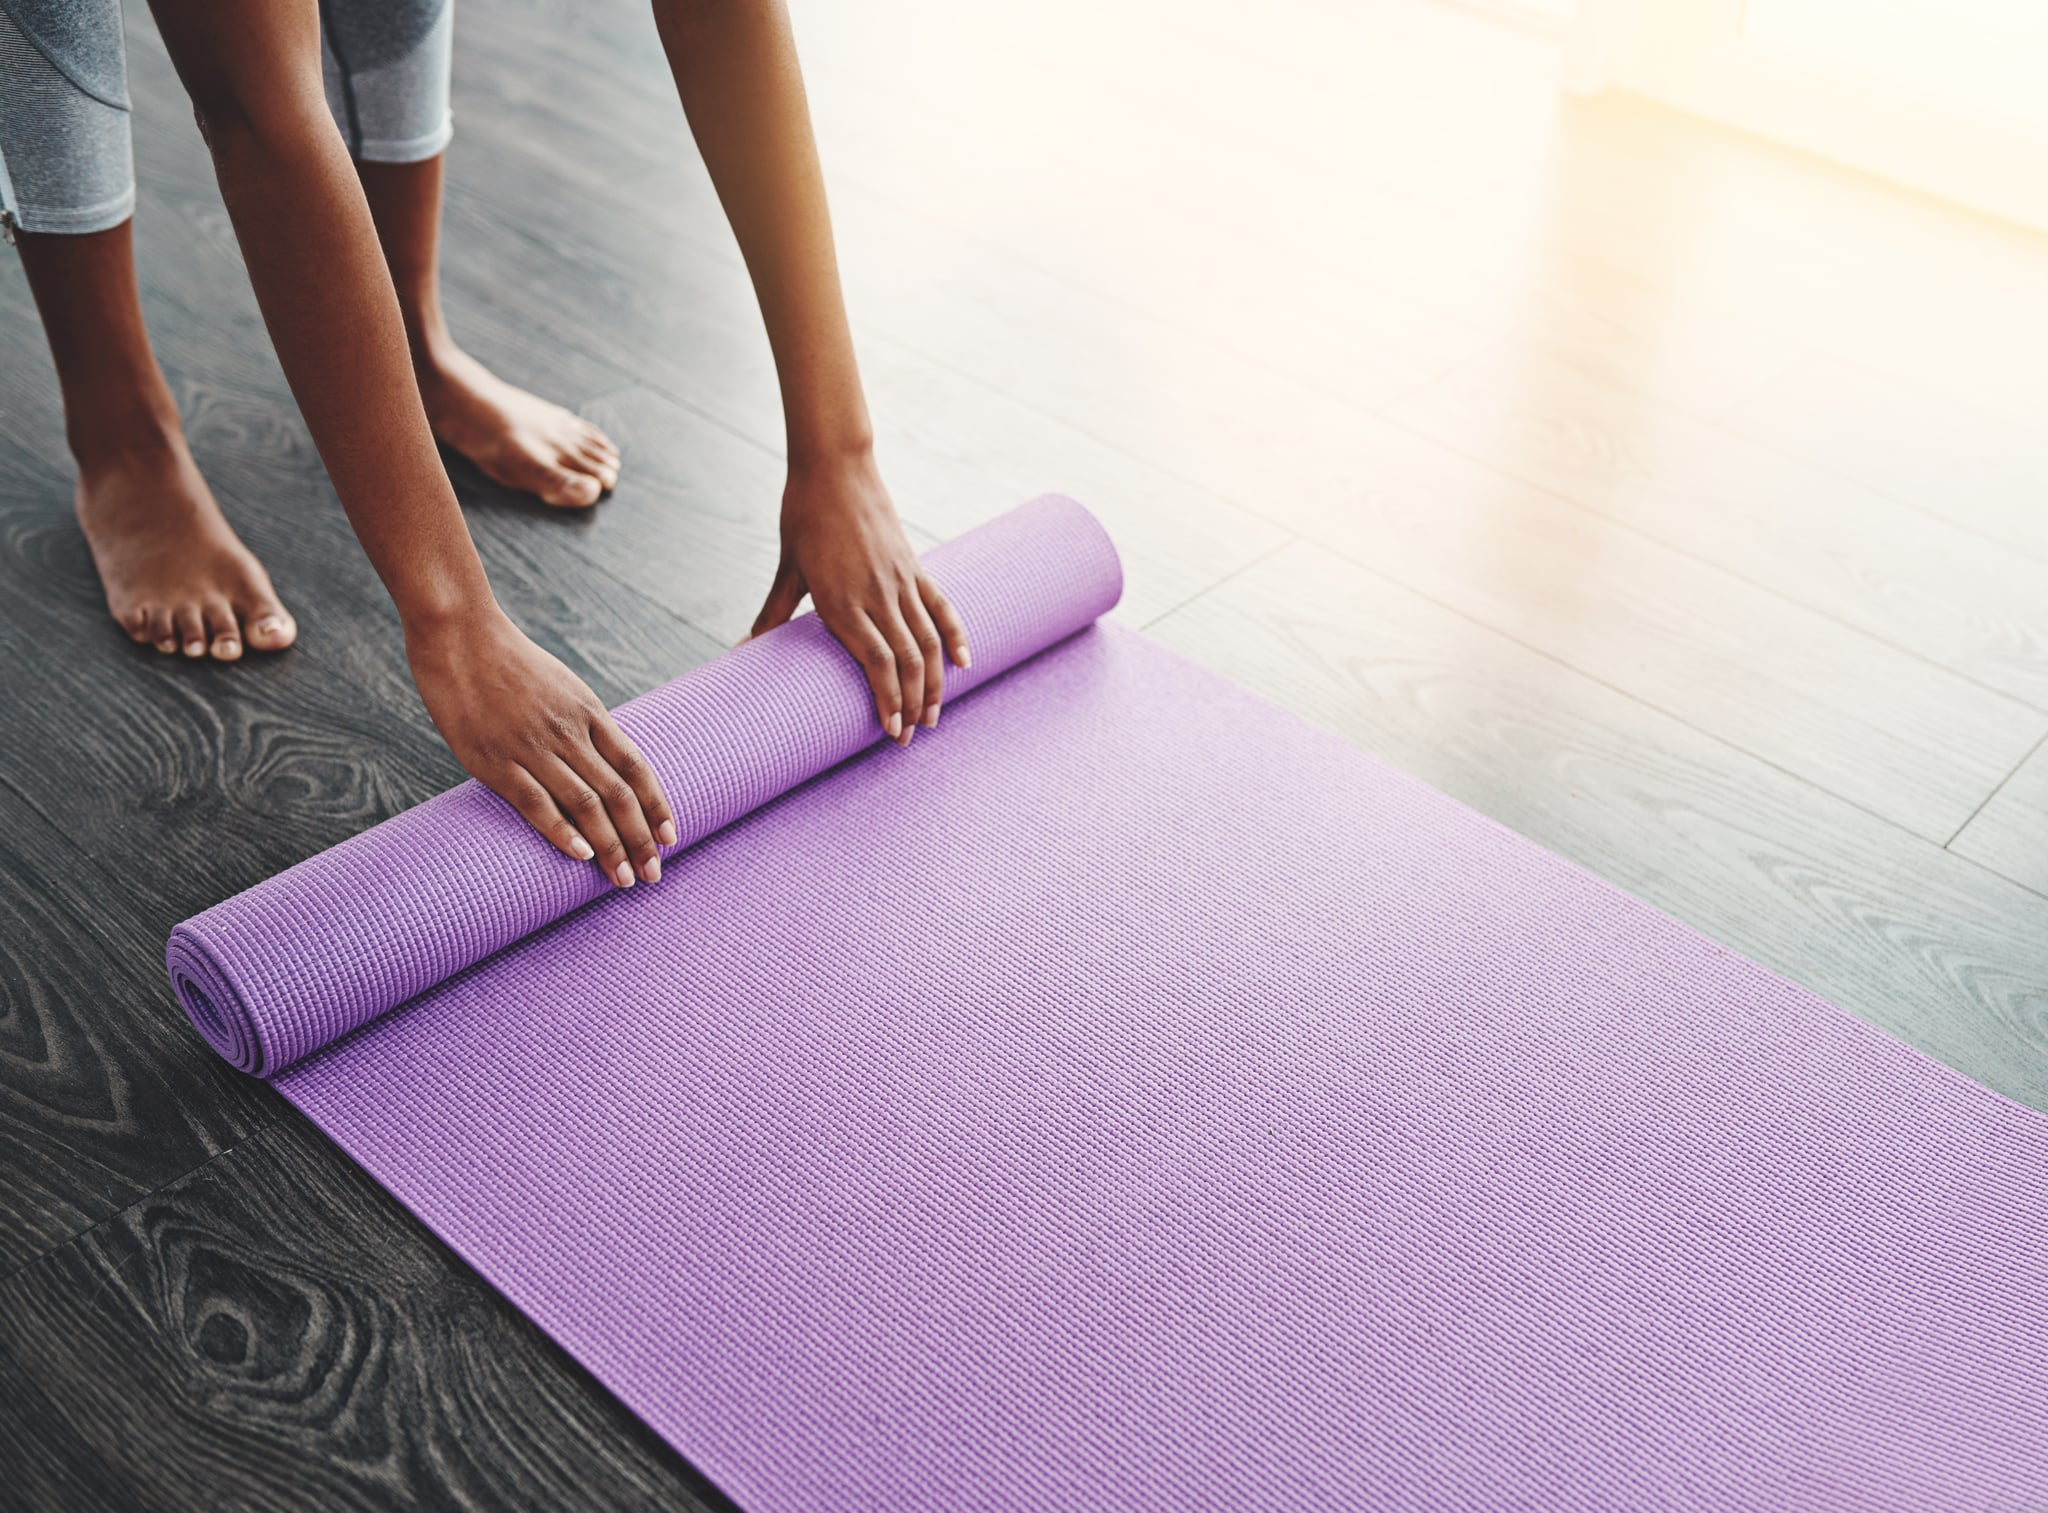 Cropped shot of an unrecognizable woman rolling up her yoga mat